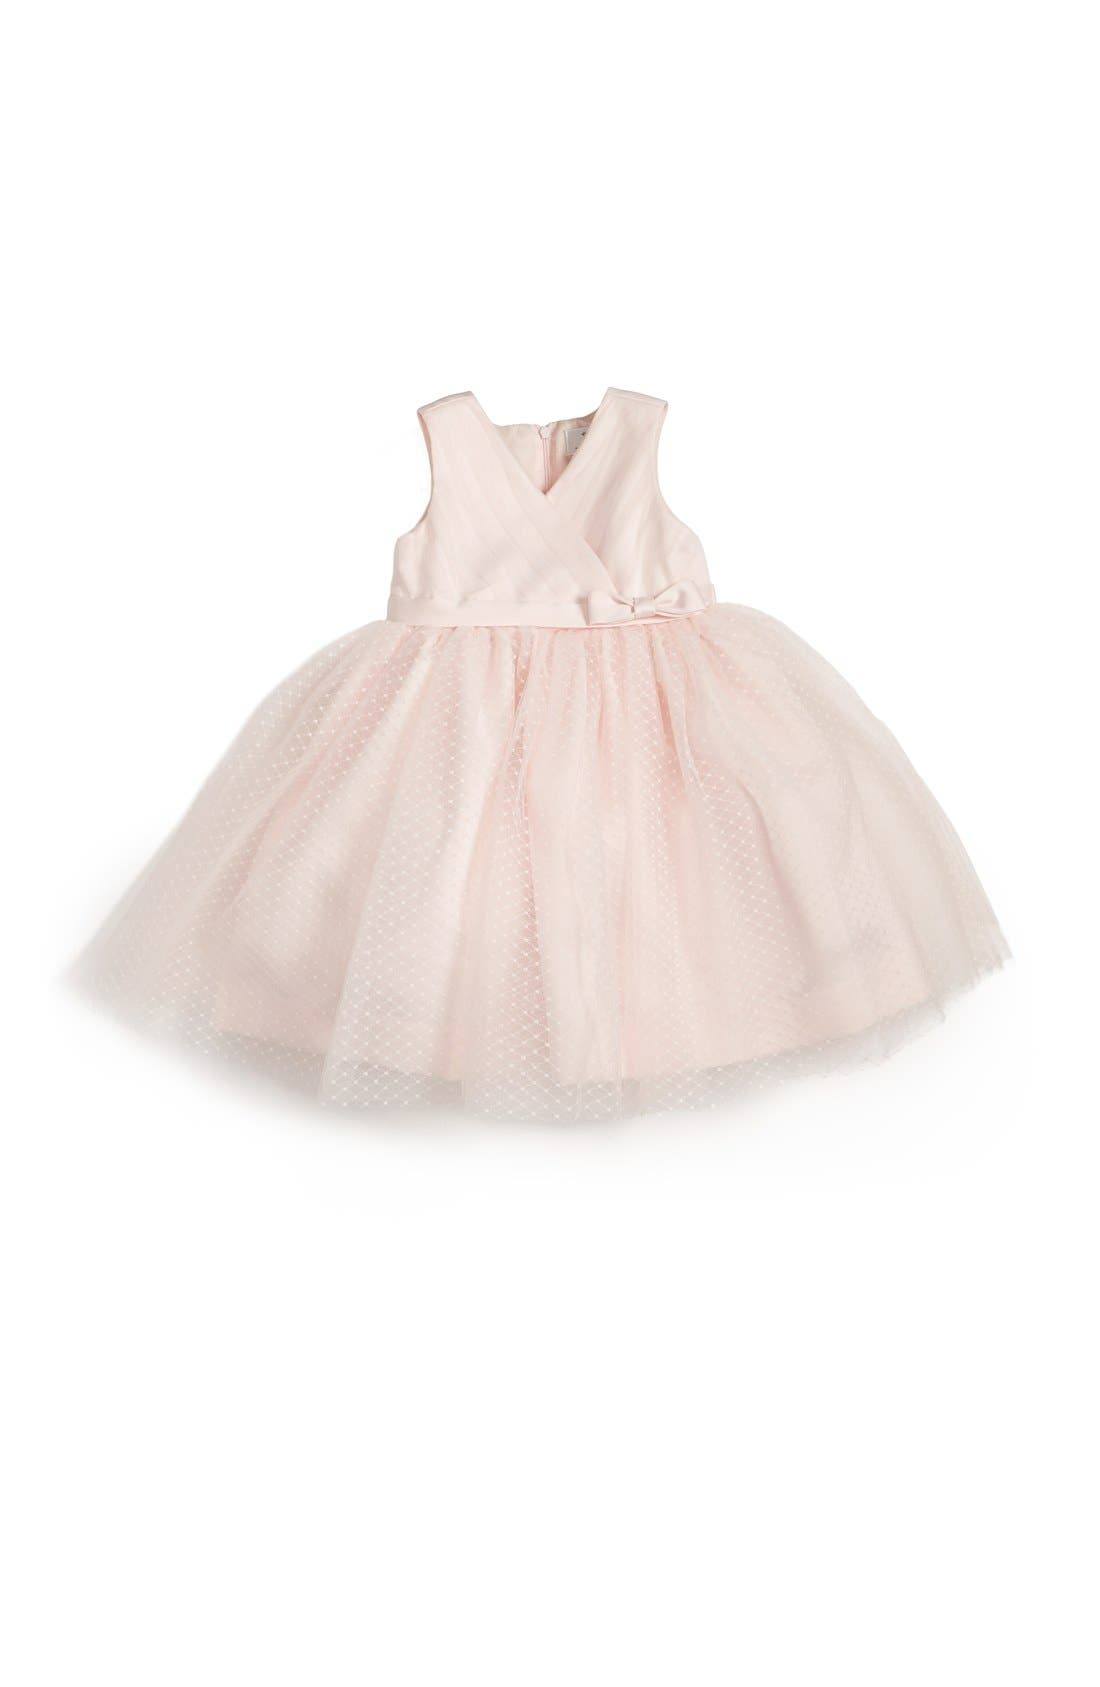 US ANGELS Satin & Tulle Dress